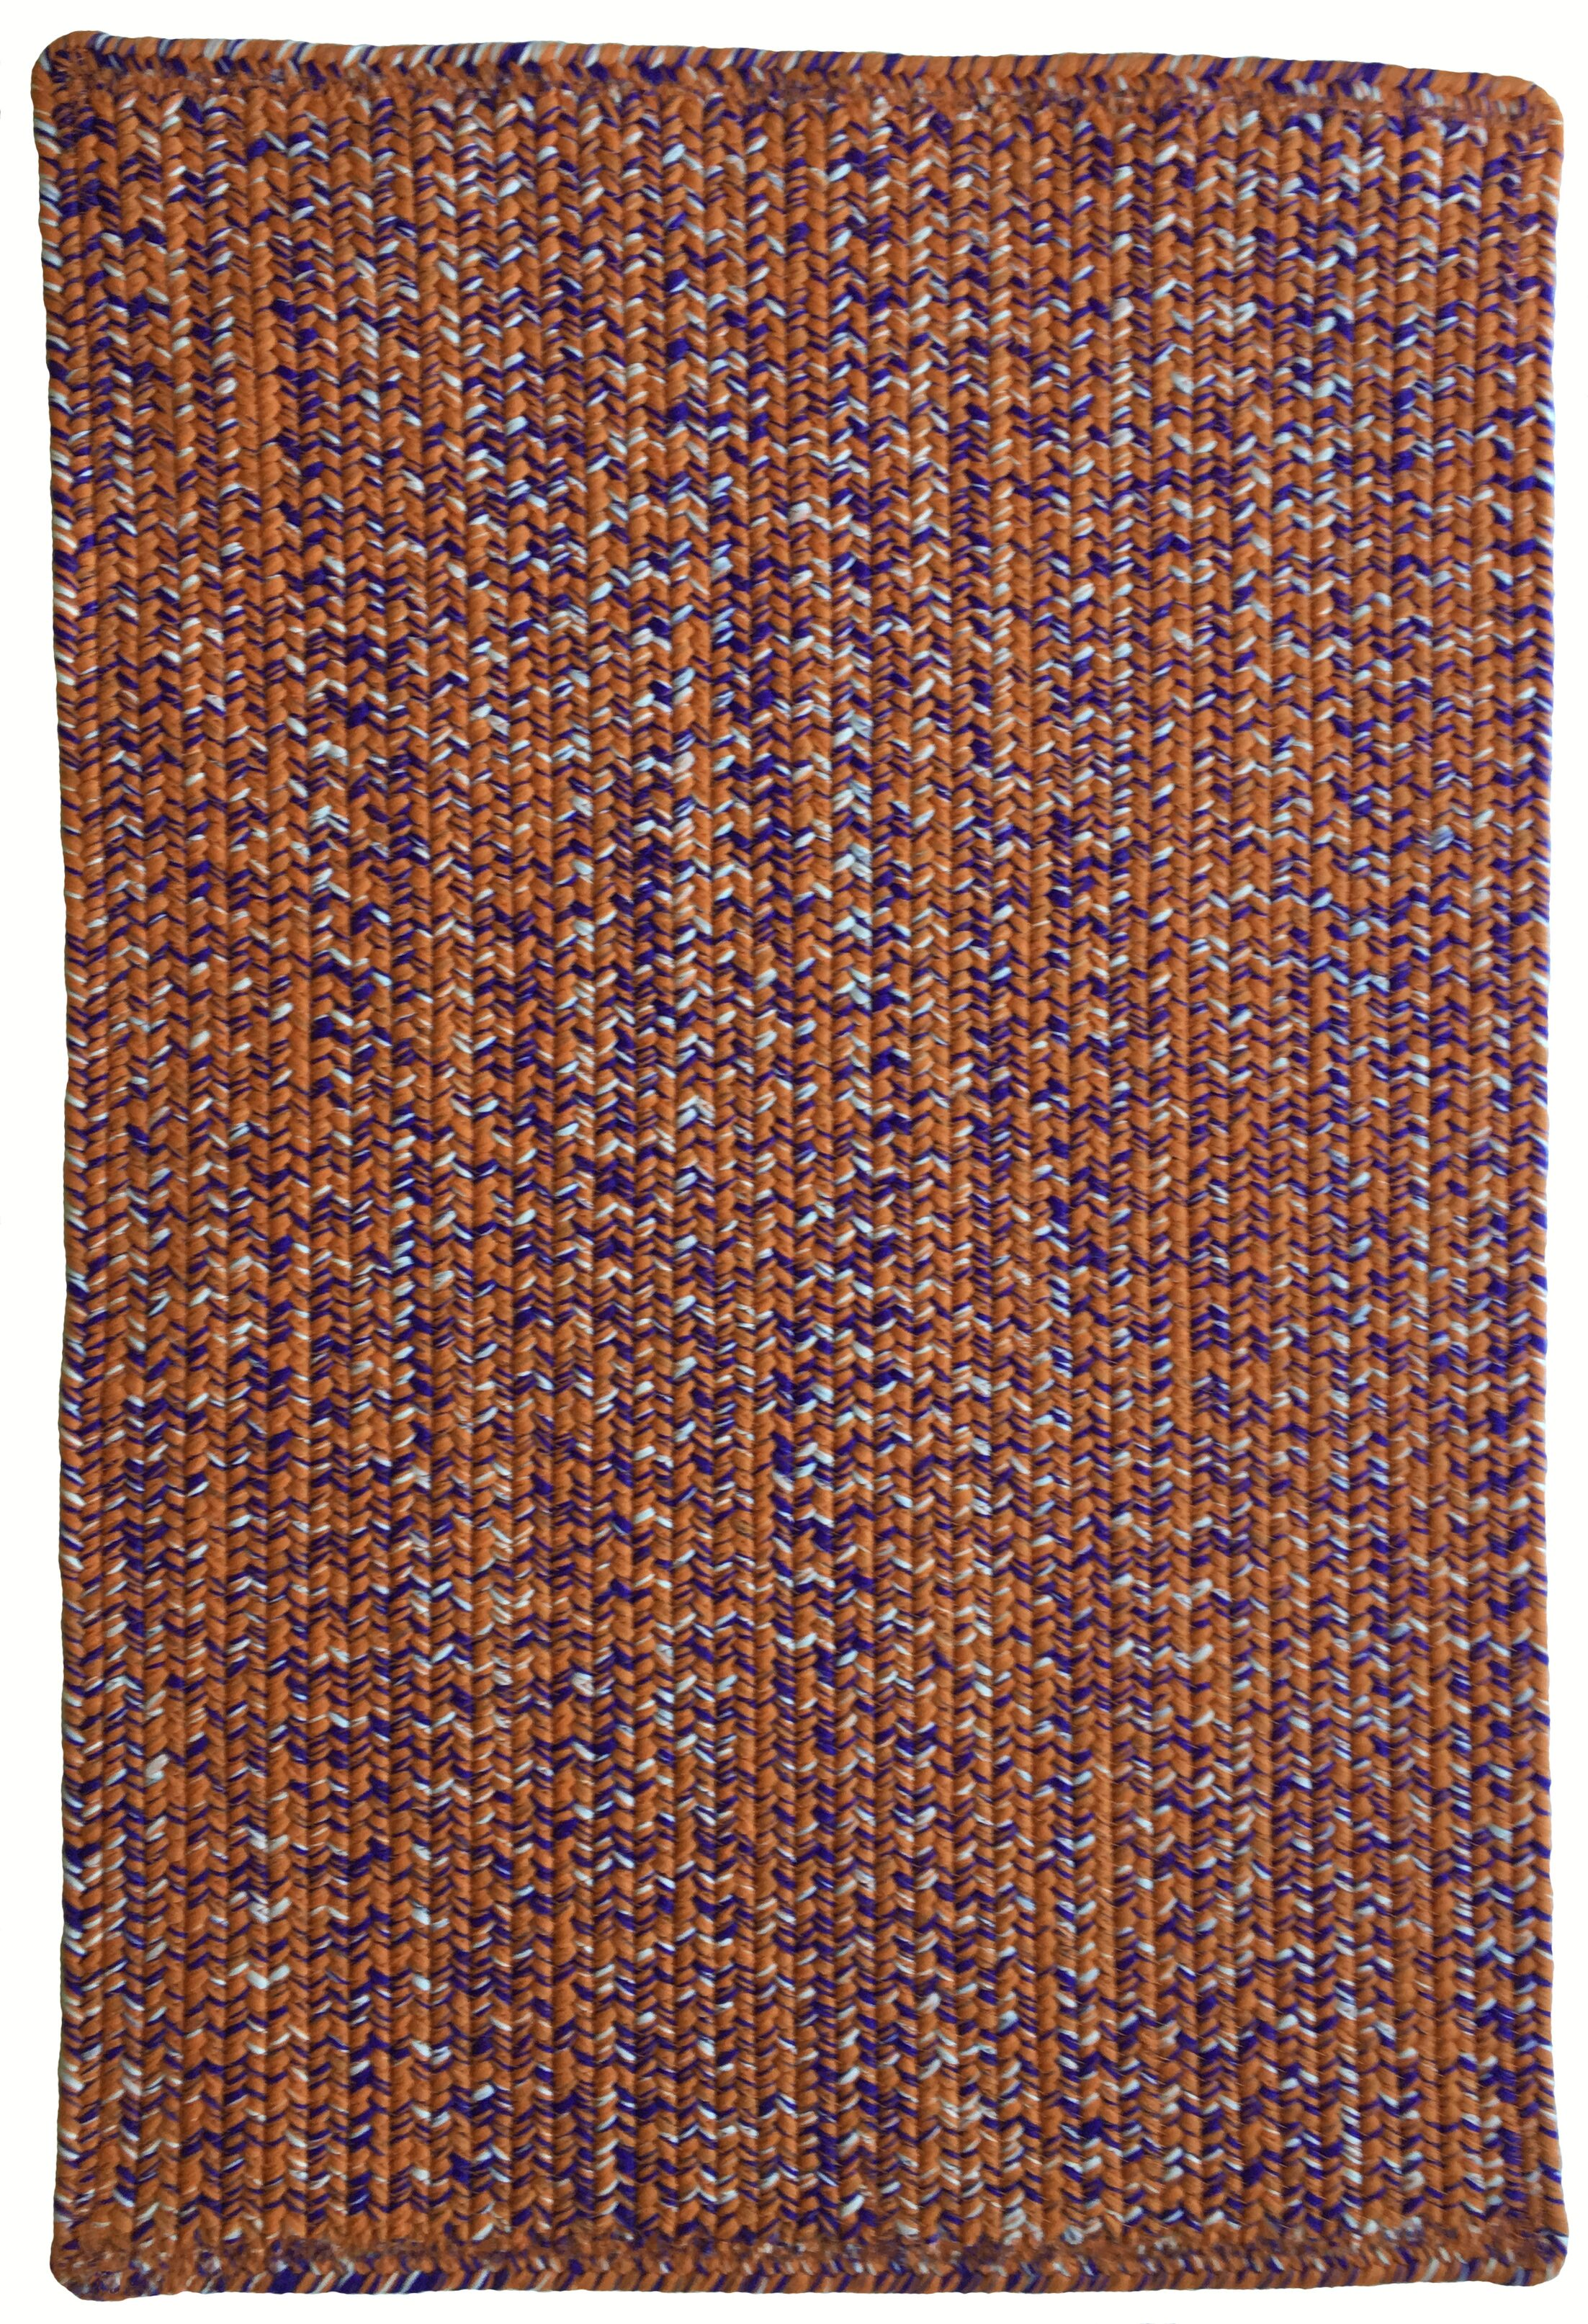 One-of-a-Kind Aukerman Hand-Braided Orange/Purple Indoor/Outdoor Area Rug Rug Size: Rectangle 4' x 6'